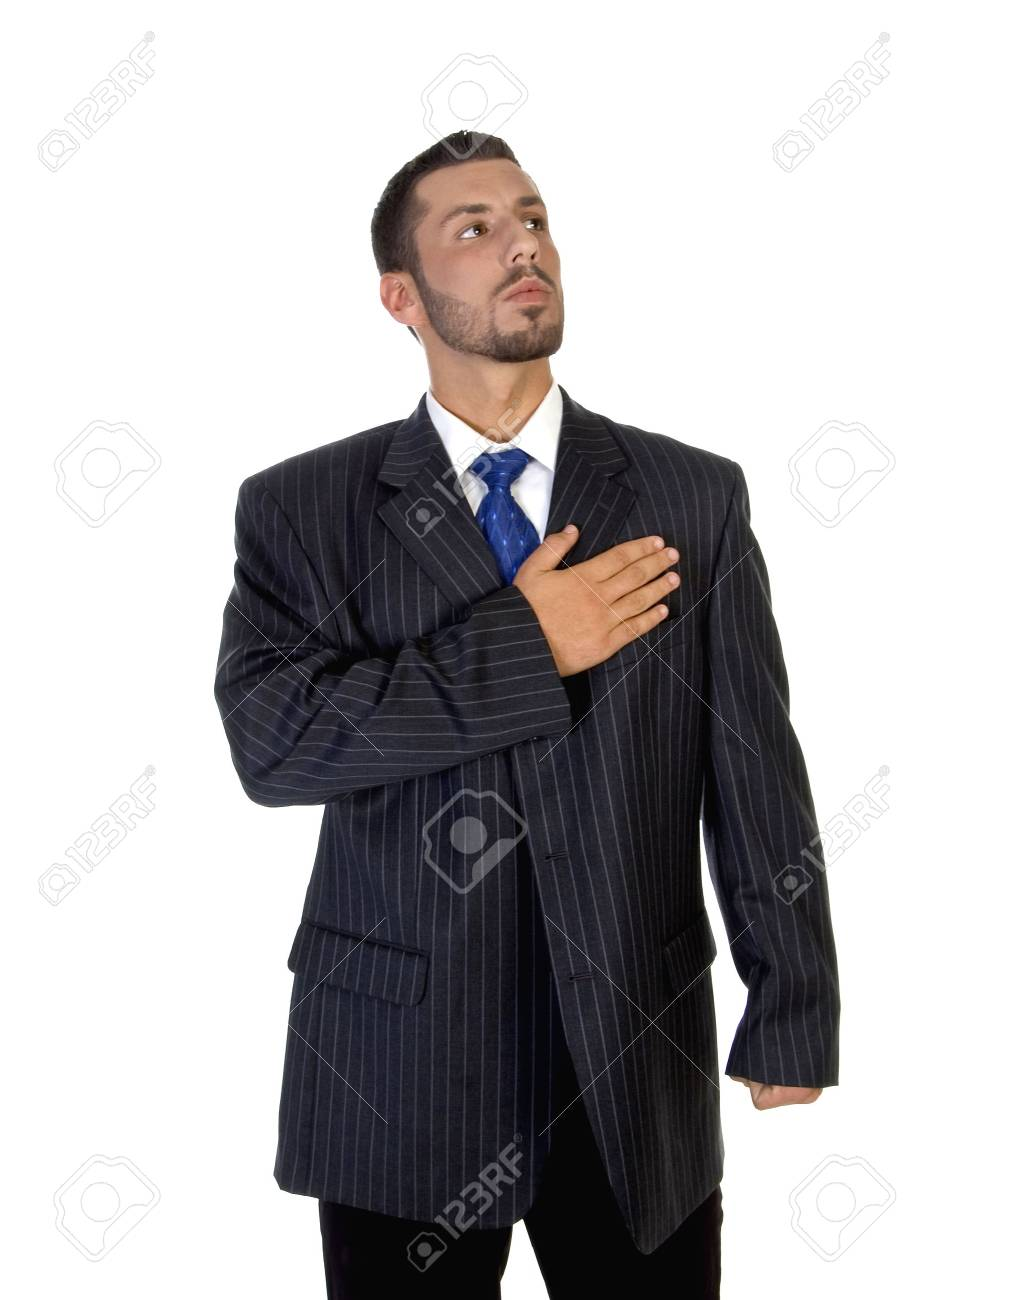 stylish pose of successful man on an isolated background Stock Photo - 3688829